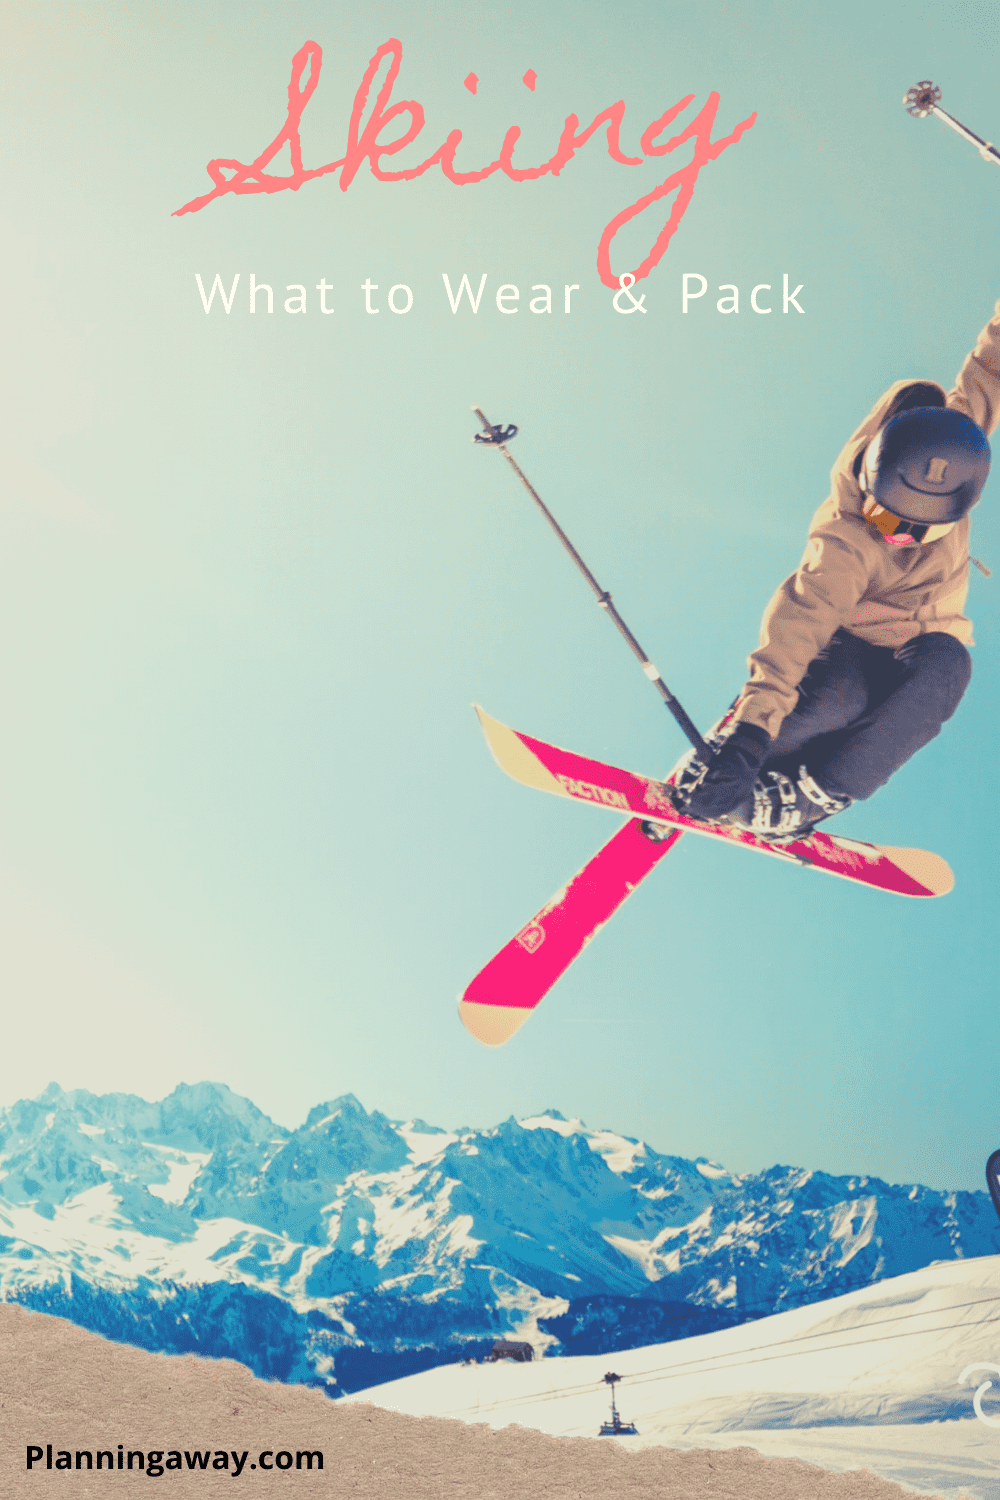 What To Wear Skiing - The Complete Guide